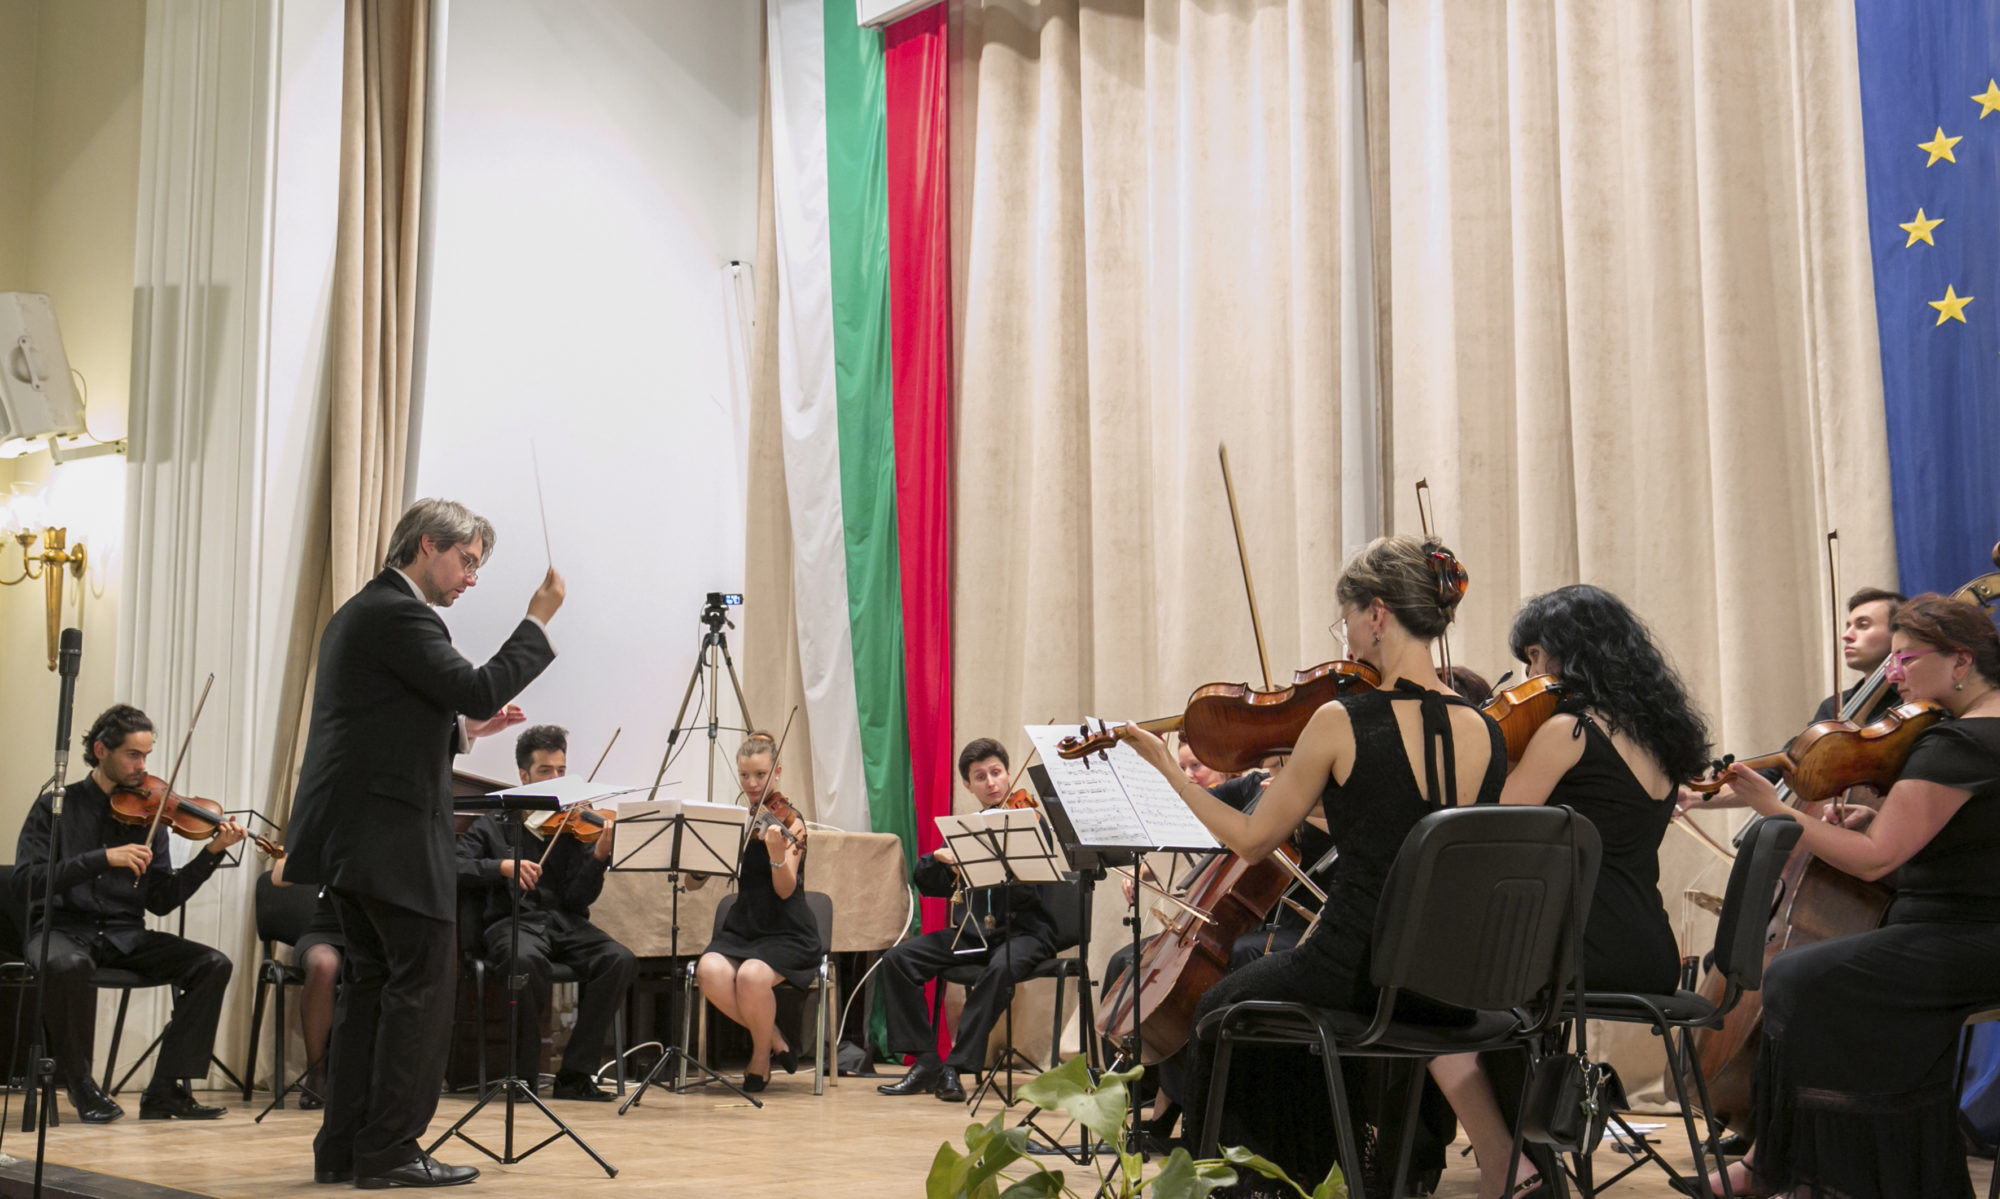 432 Chamber Orchestra